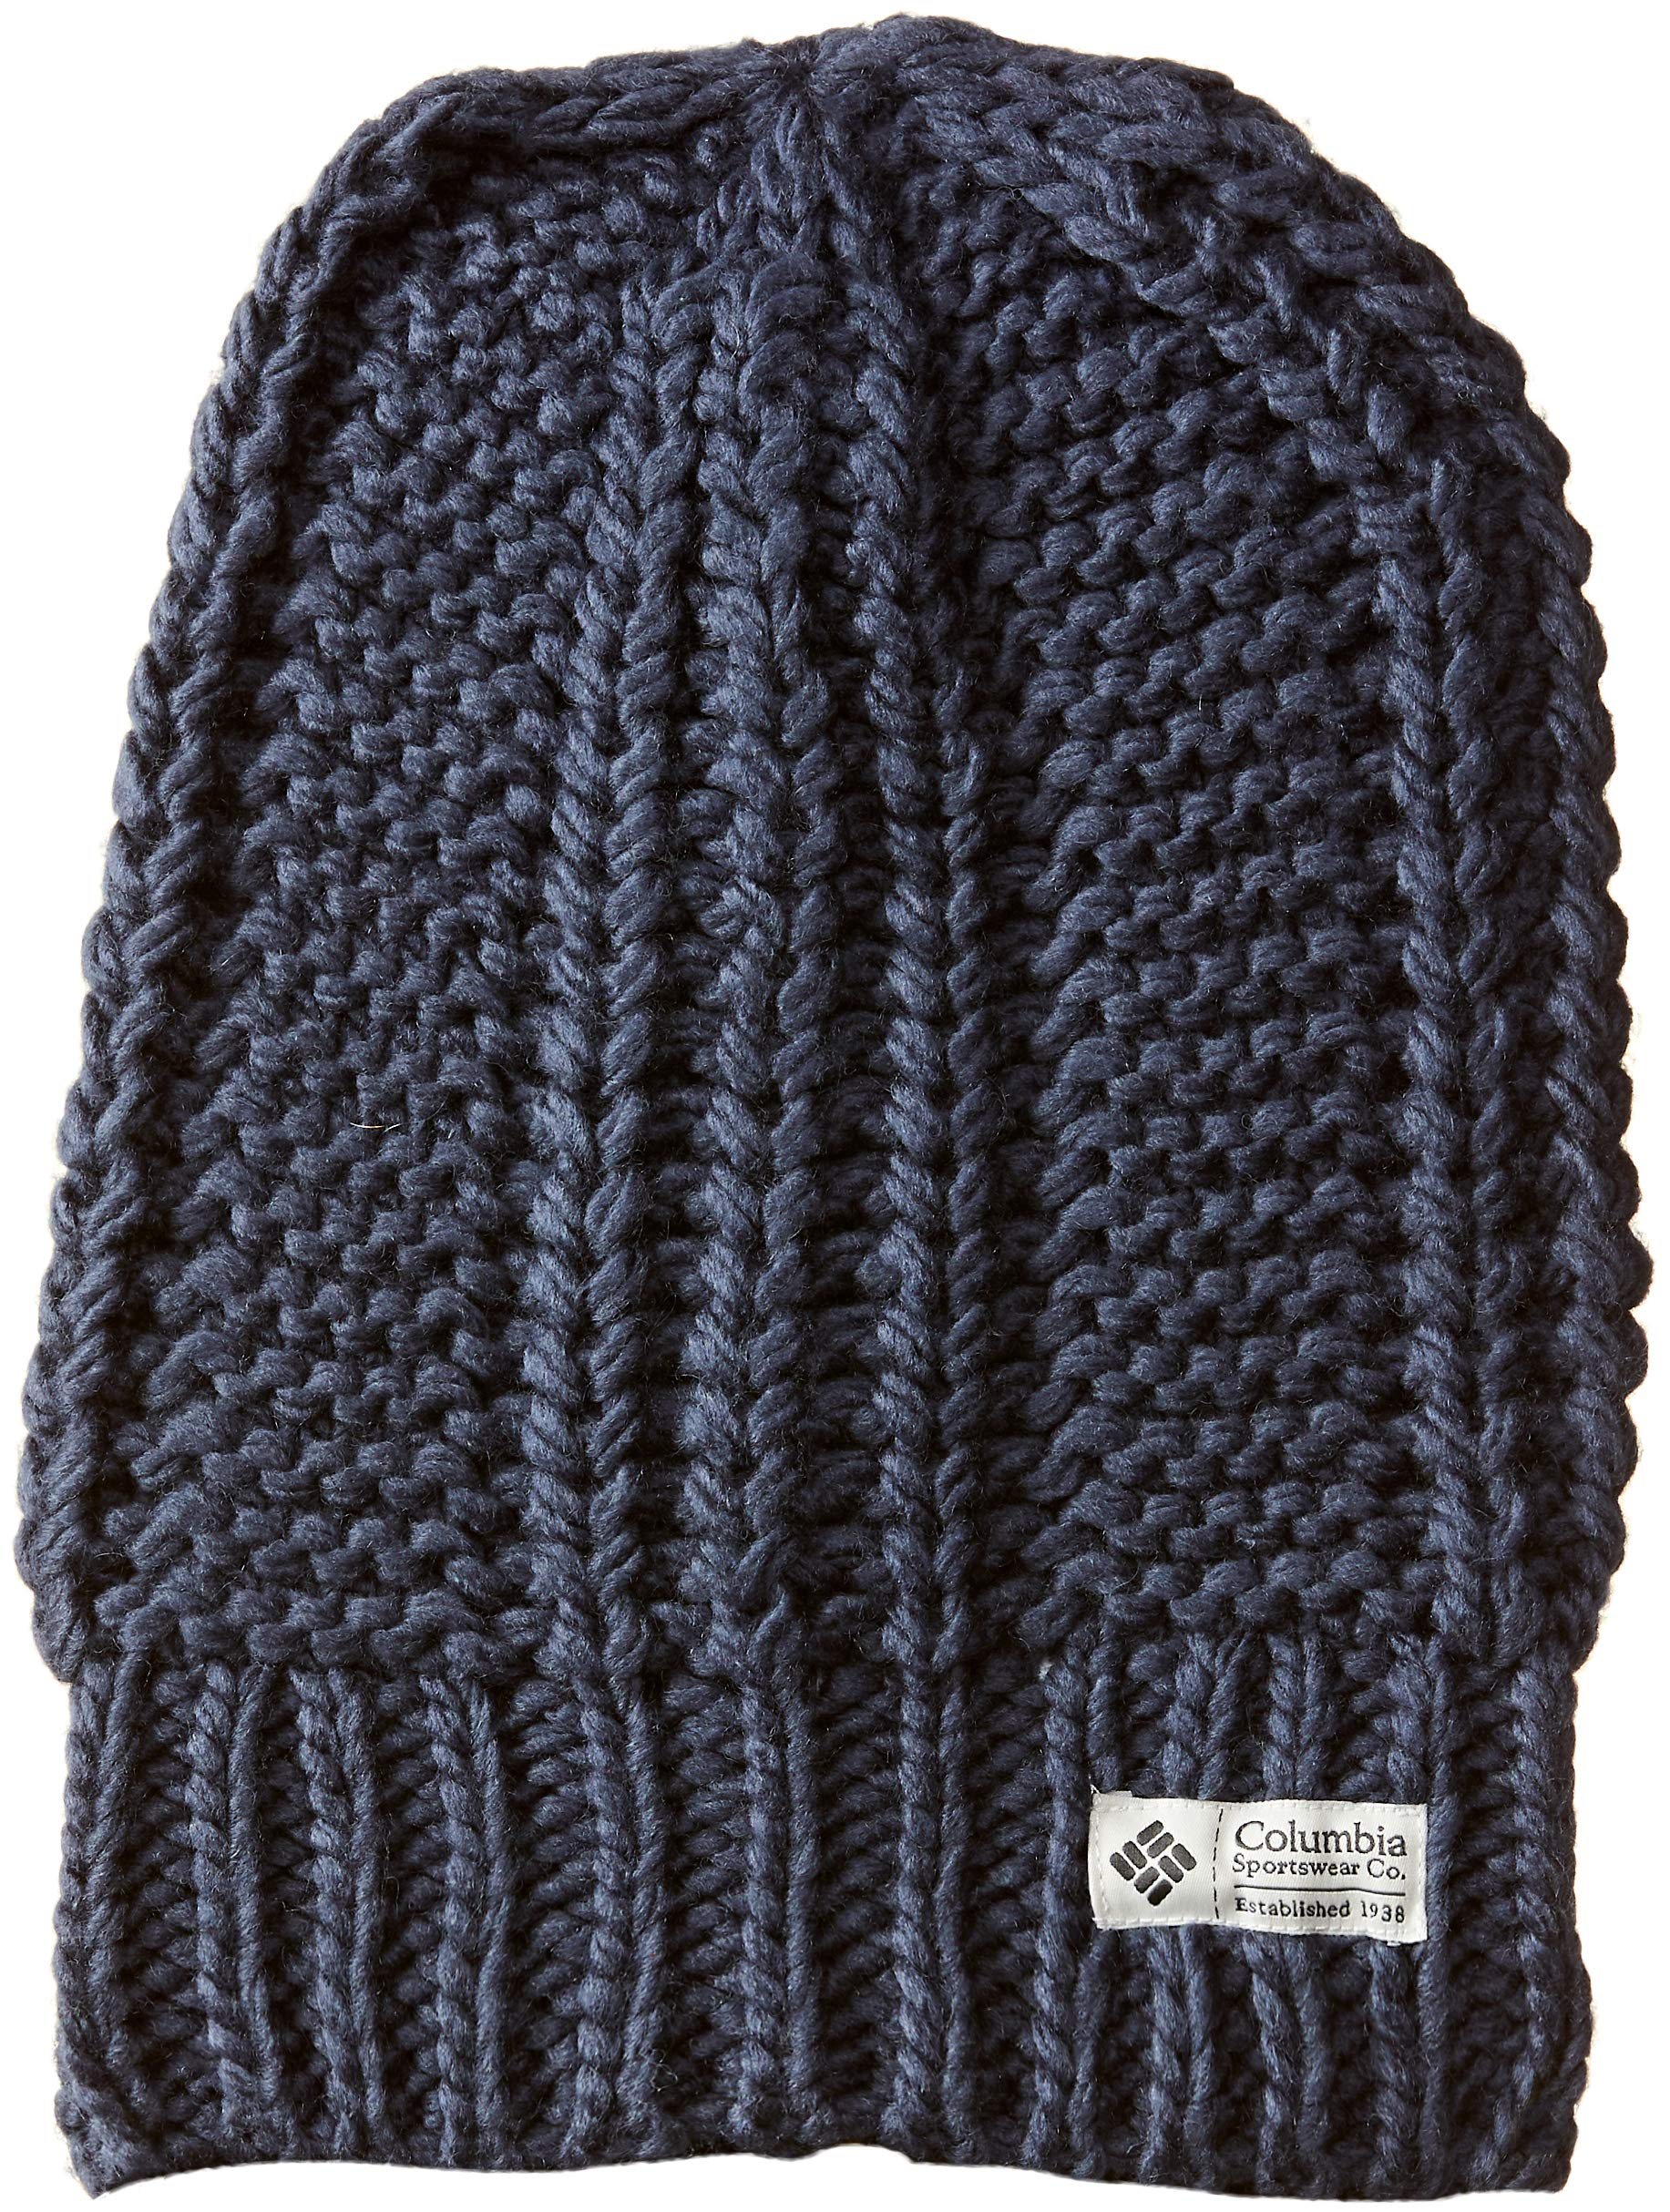 Columbia Women's Hideaway Haven Slouchy Beanie, Nocturnal, One Size